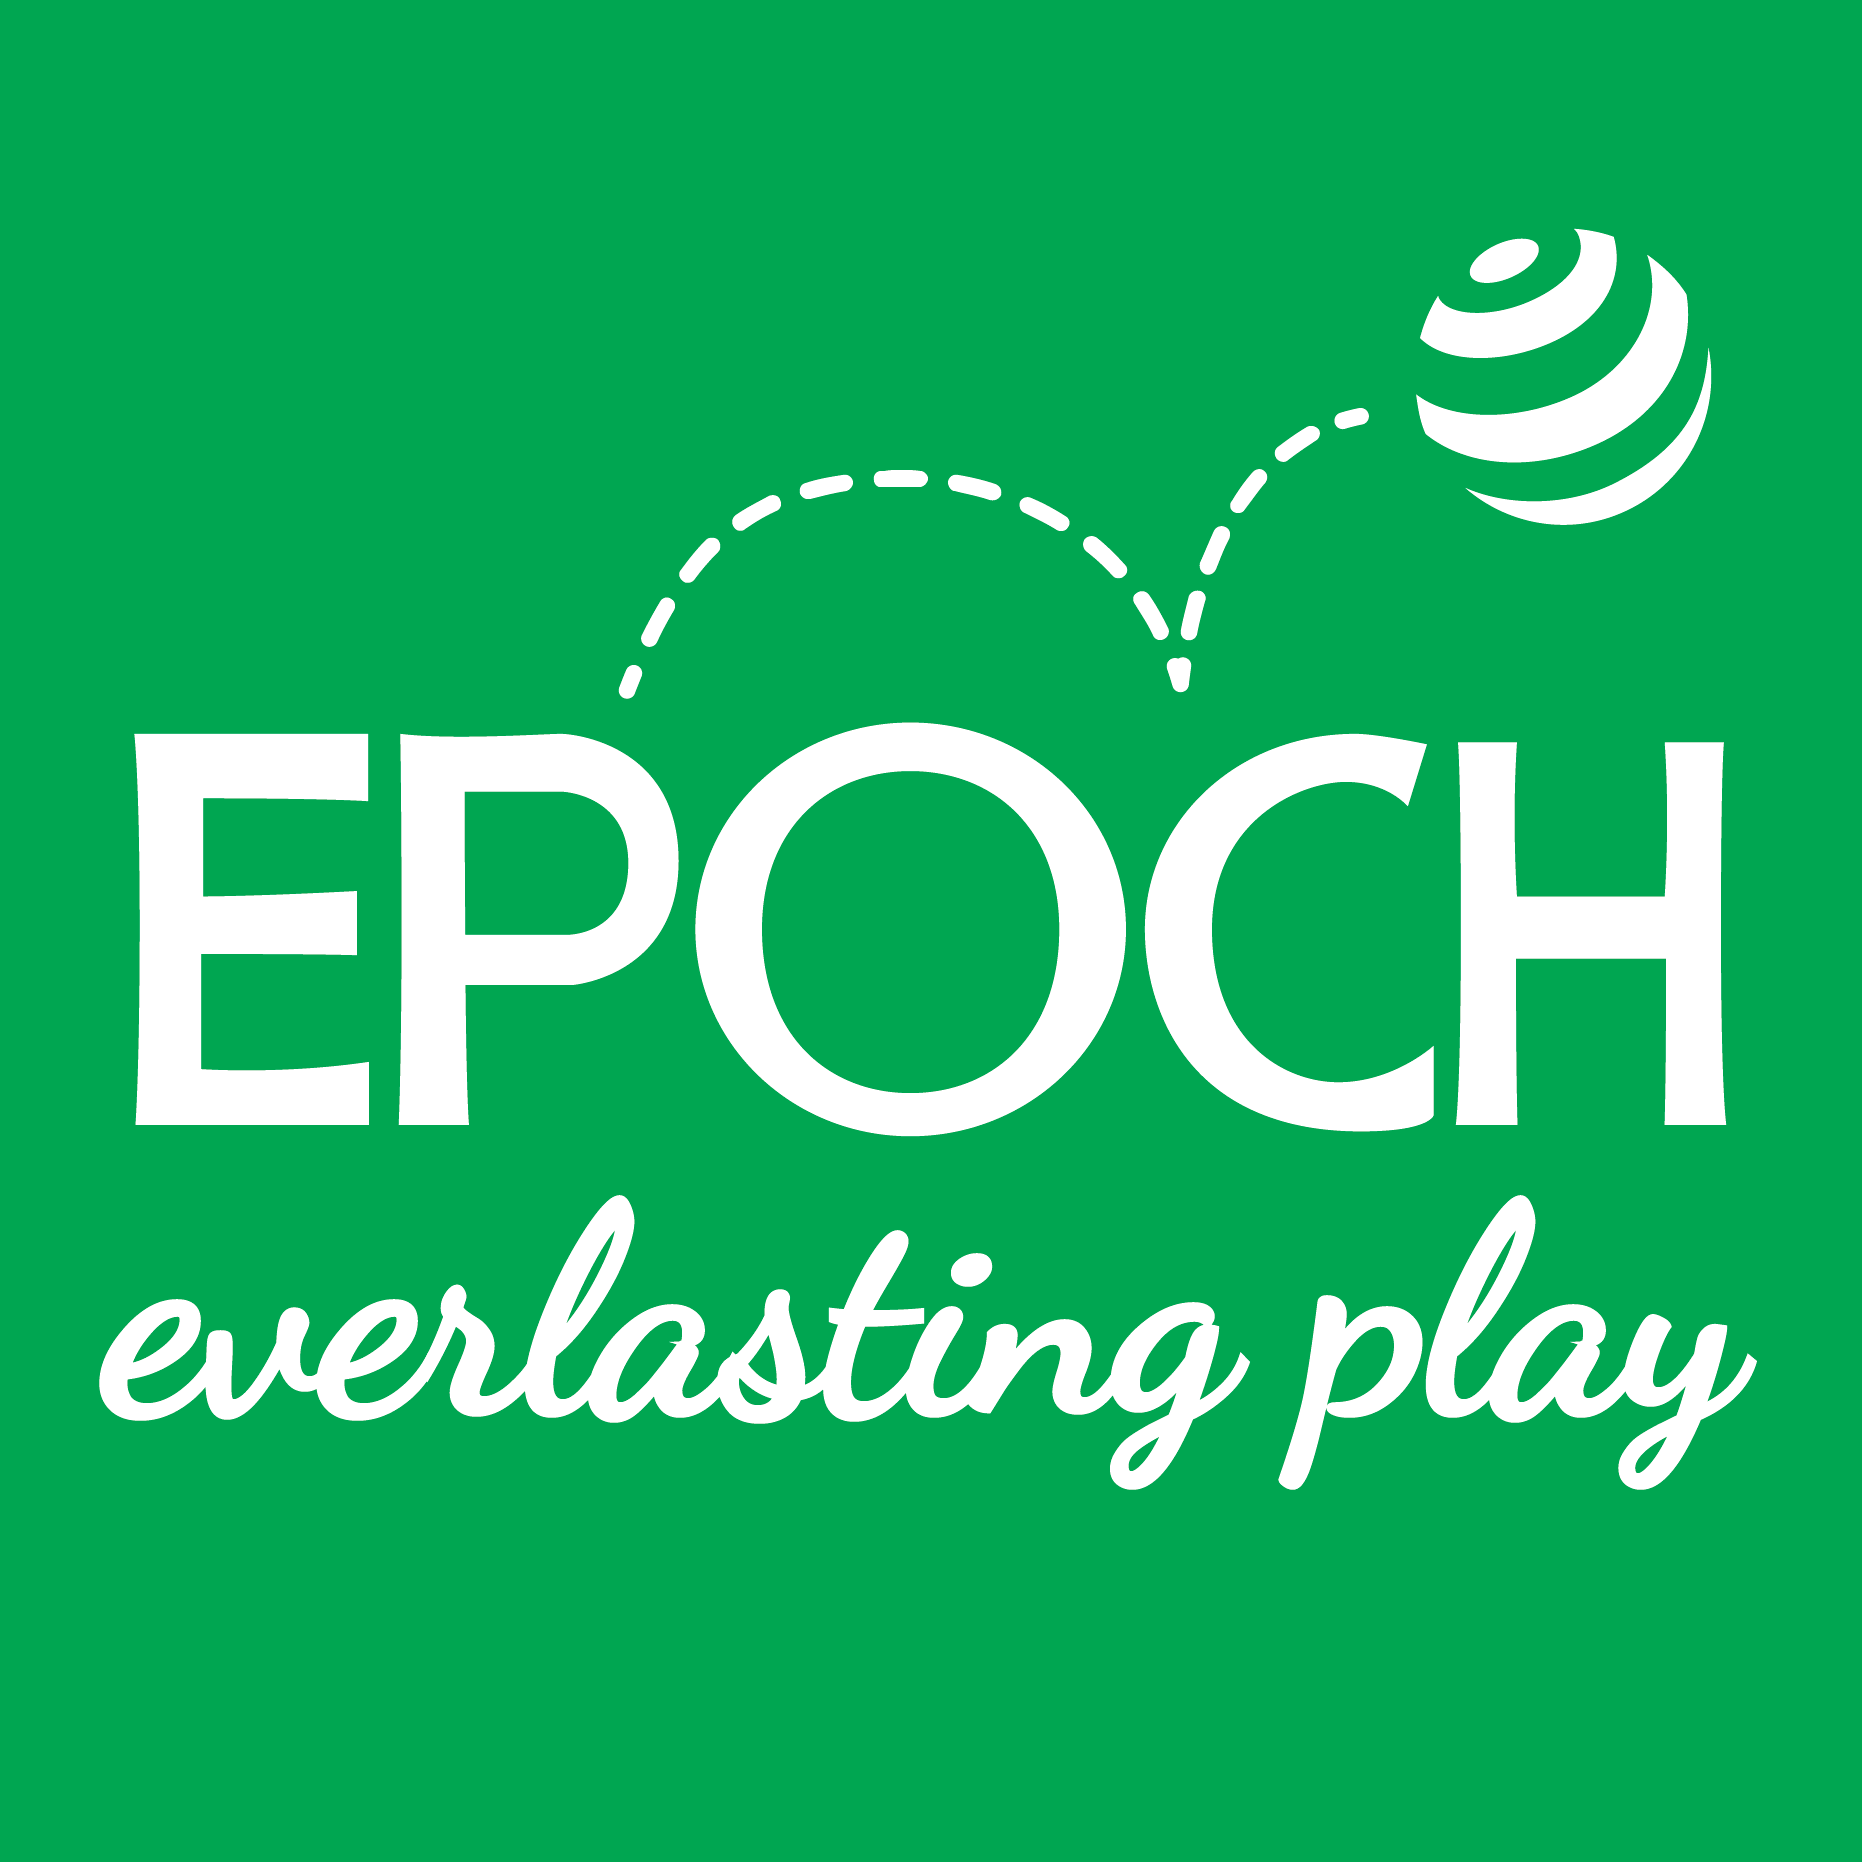 Epoch Everlasting Play